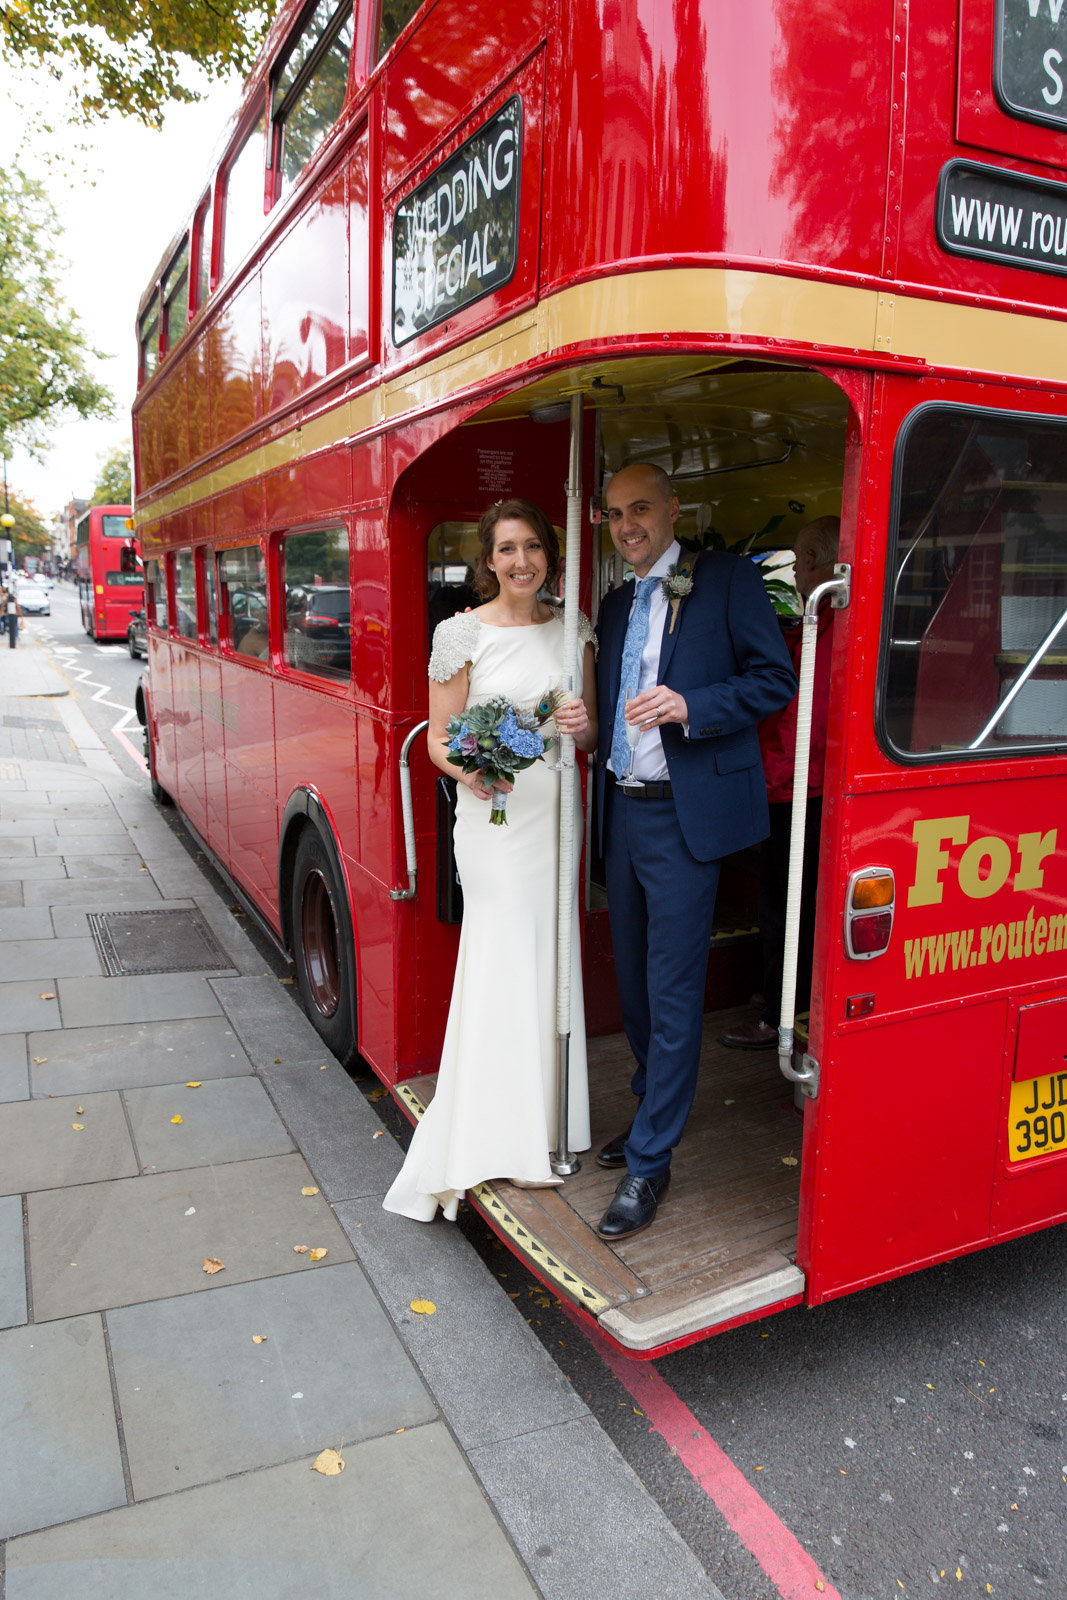 London bus wedding